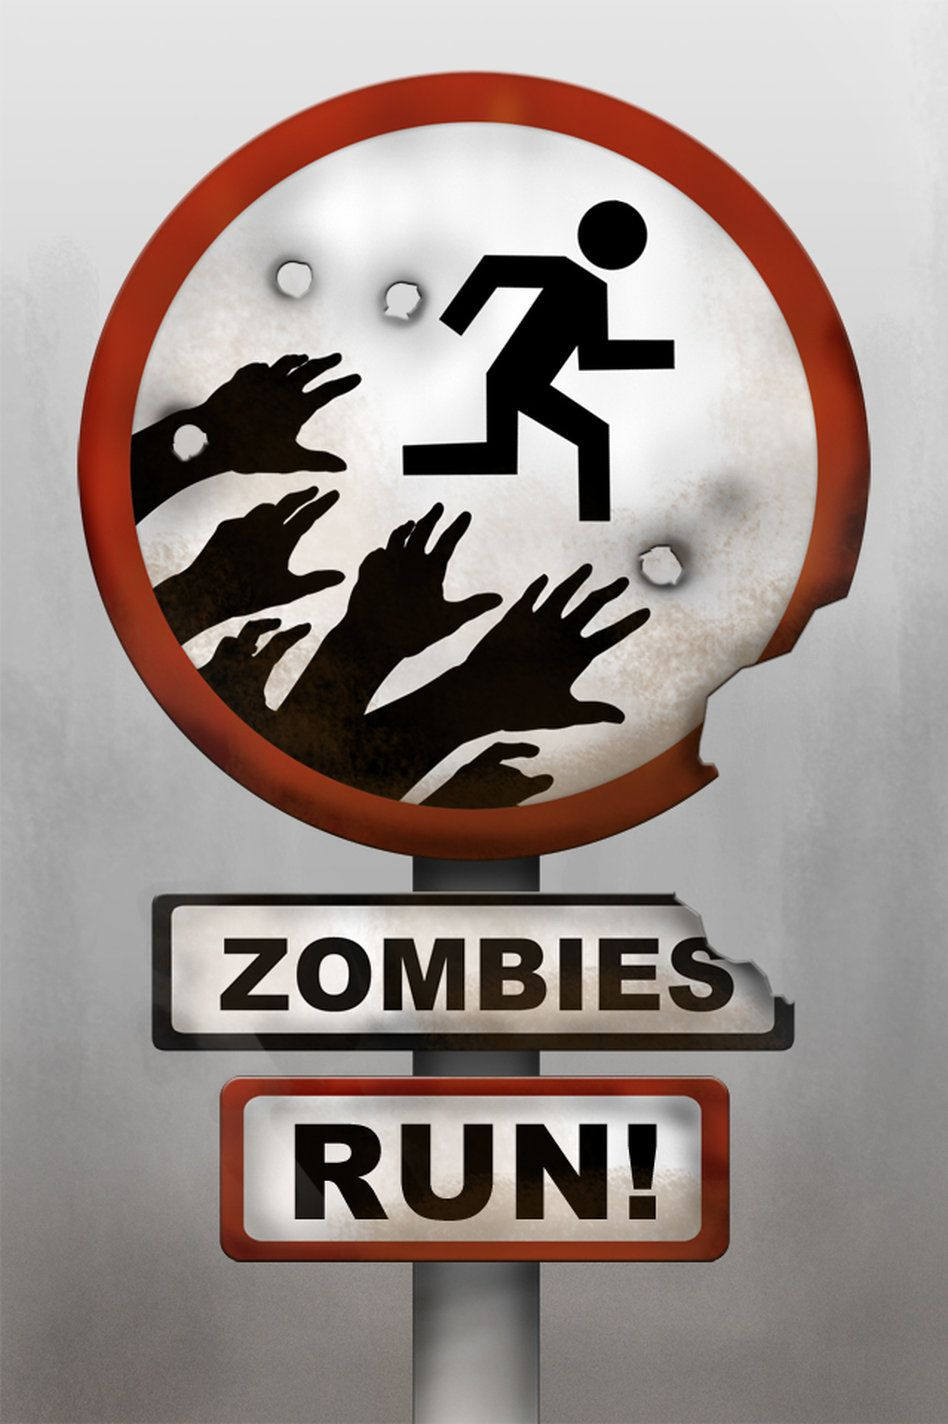 The New Running Game Where 'Zombies' Chase You Zombie